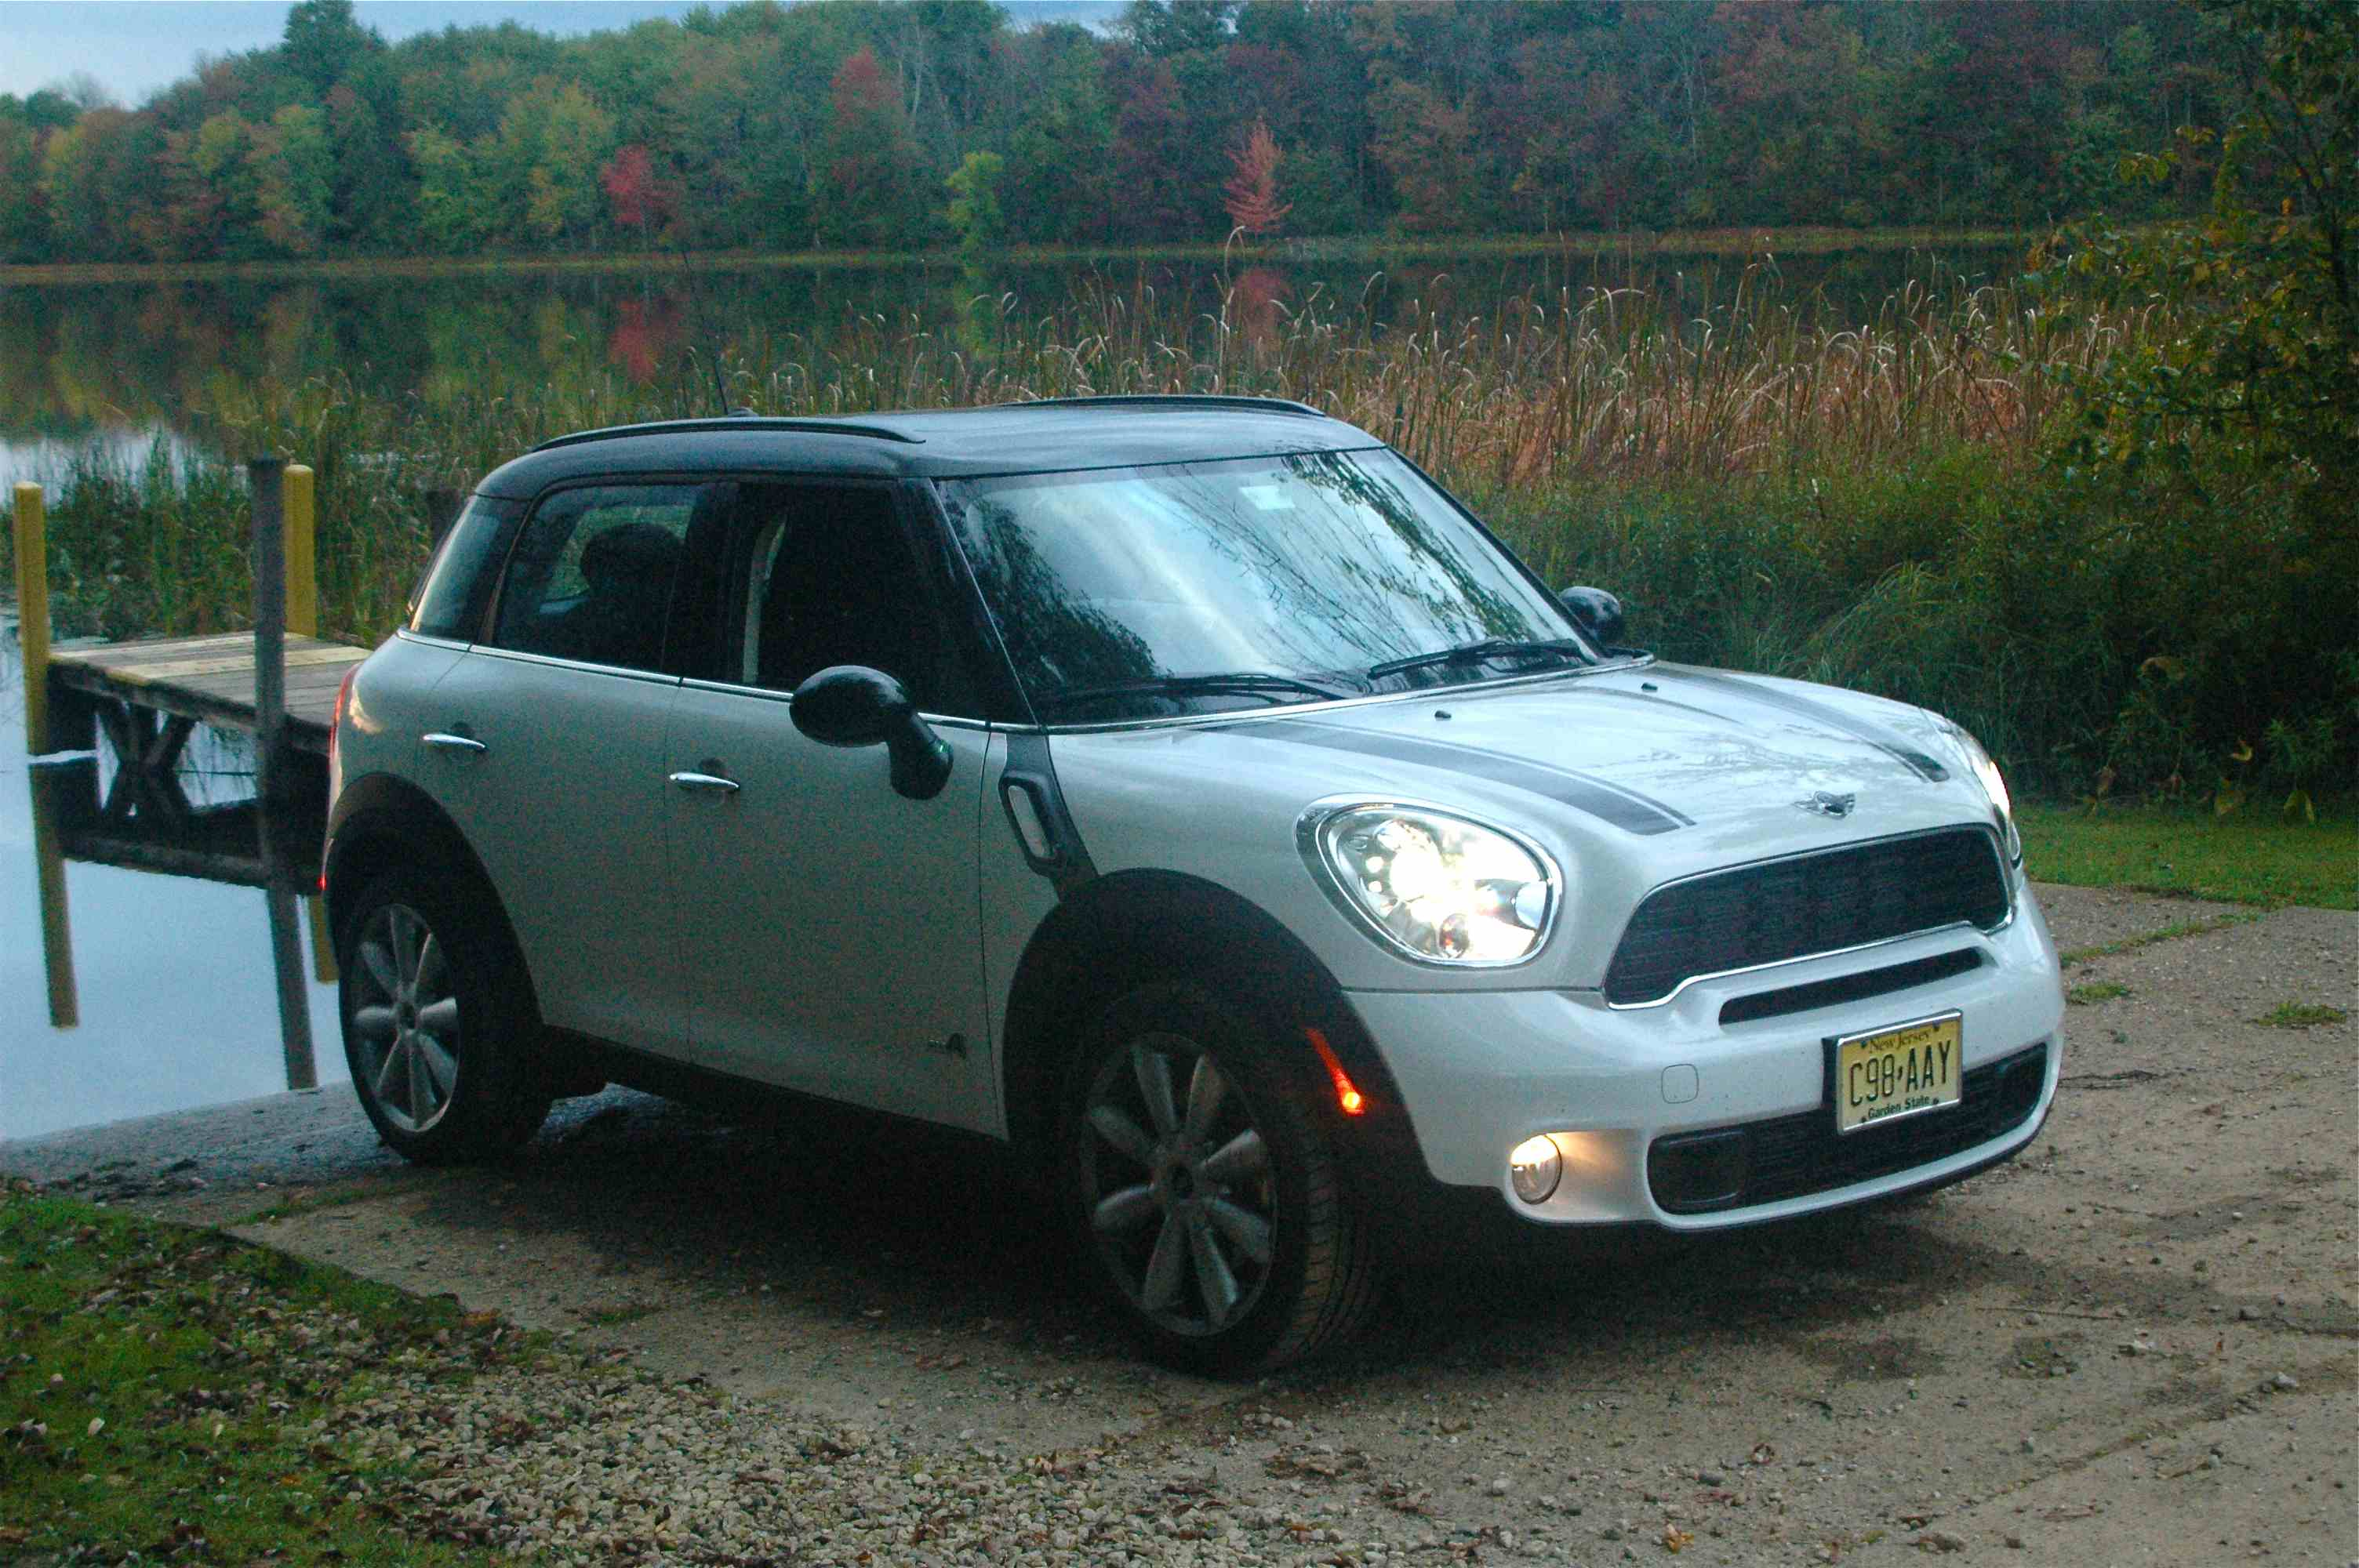 2011 mini cooper s countryman all4 road trip review by steve purdy video. Black Bedroom Furniture Sets. Home Design Ideas